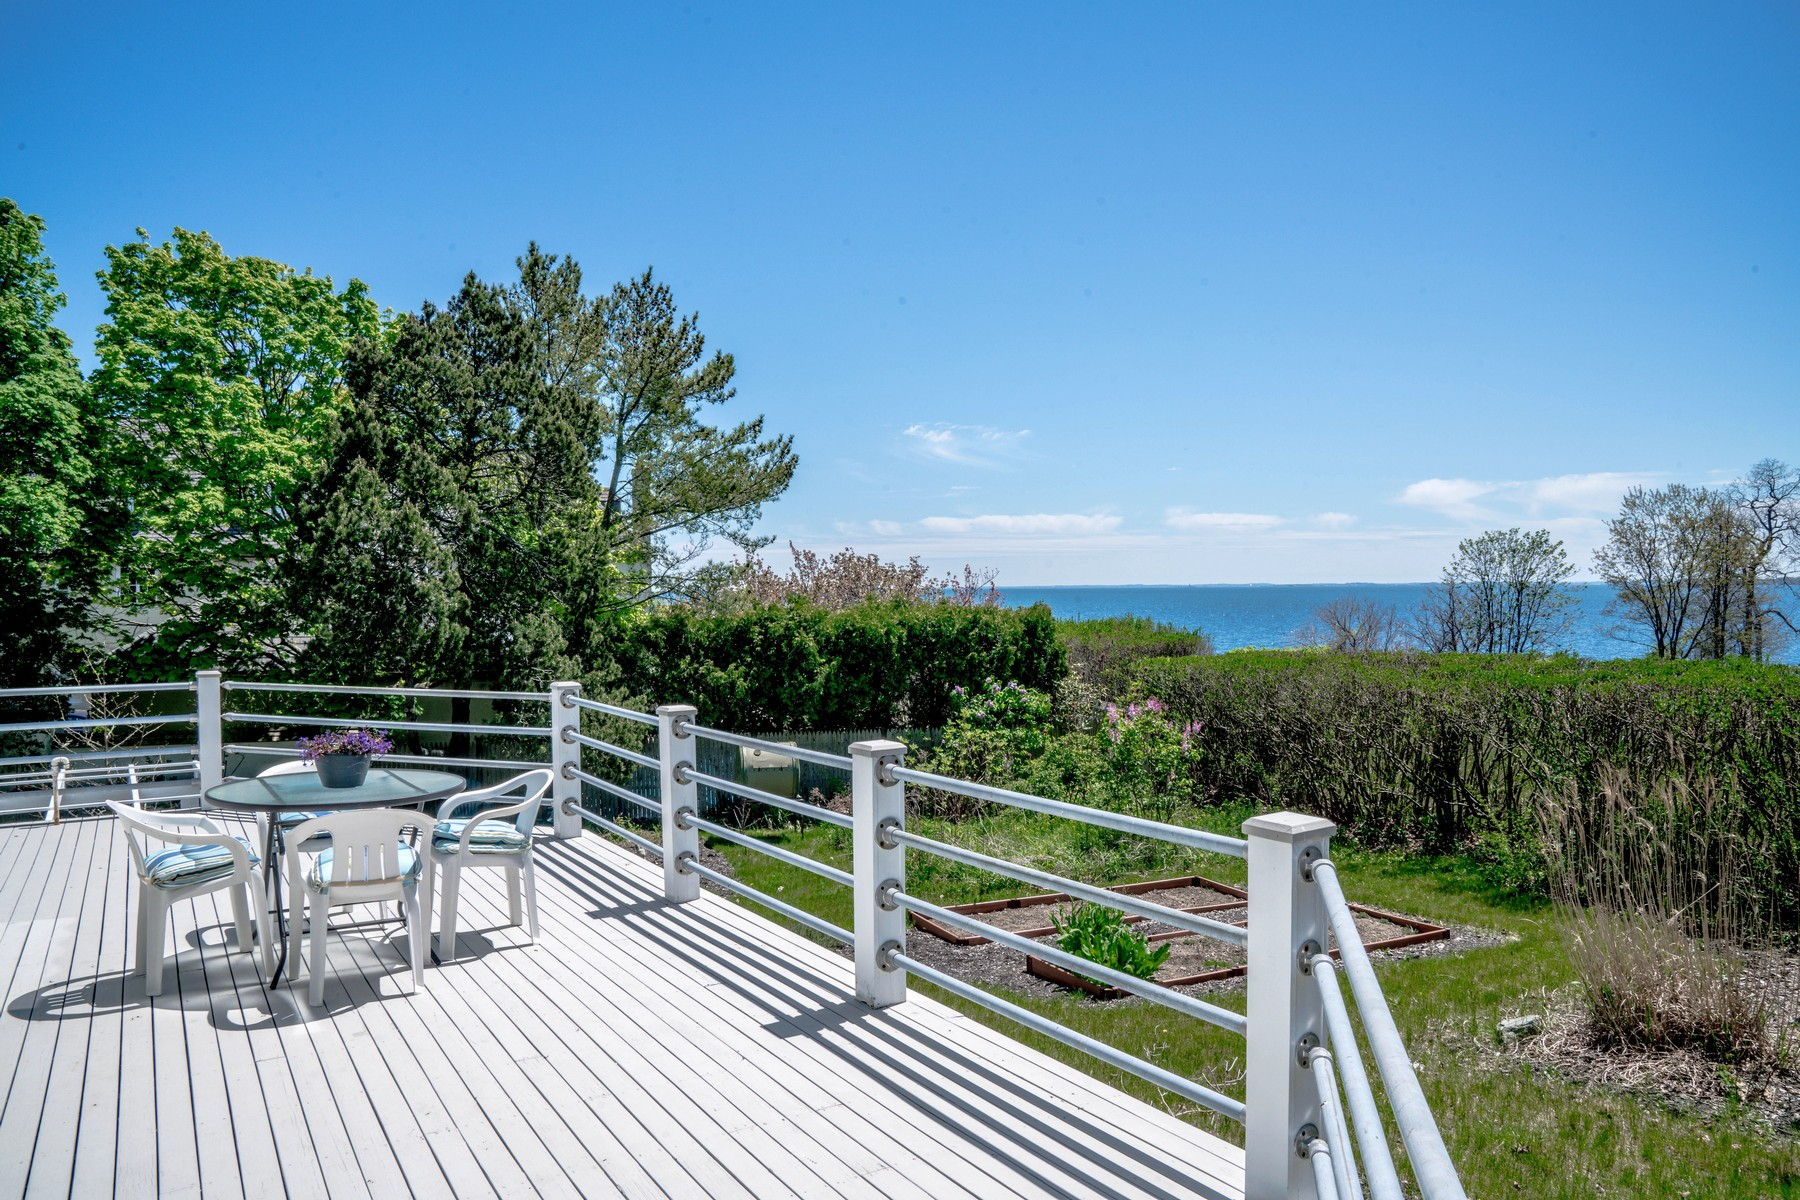 Single Family Home for Sale at Breathtaking Views 41 Littles Point Road Swampscott, Massachusetts 01907 United States